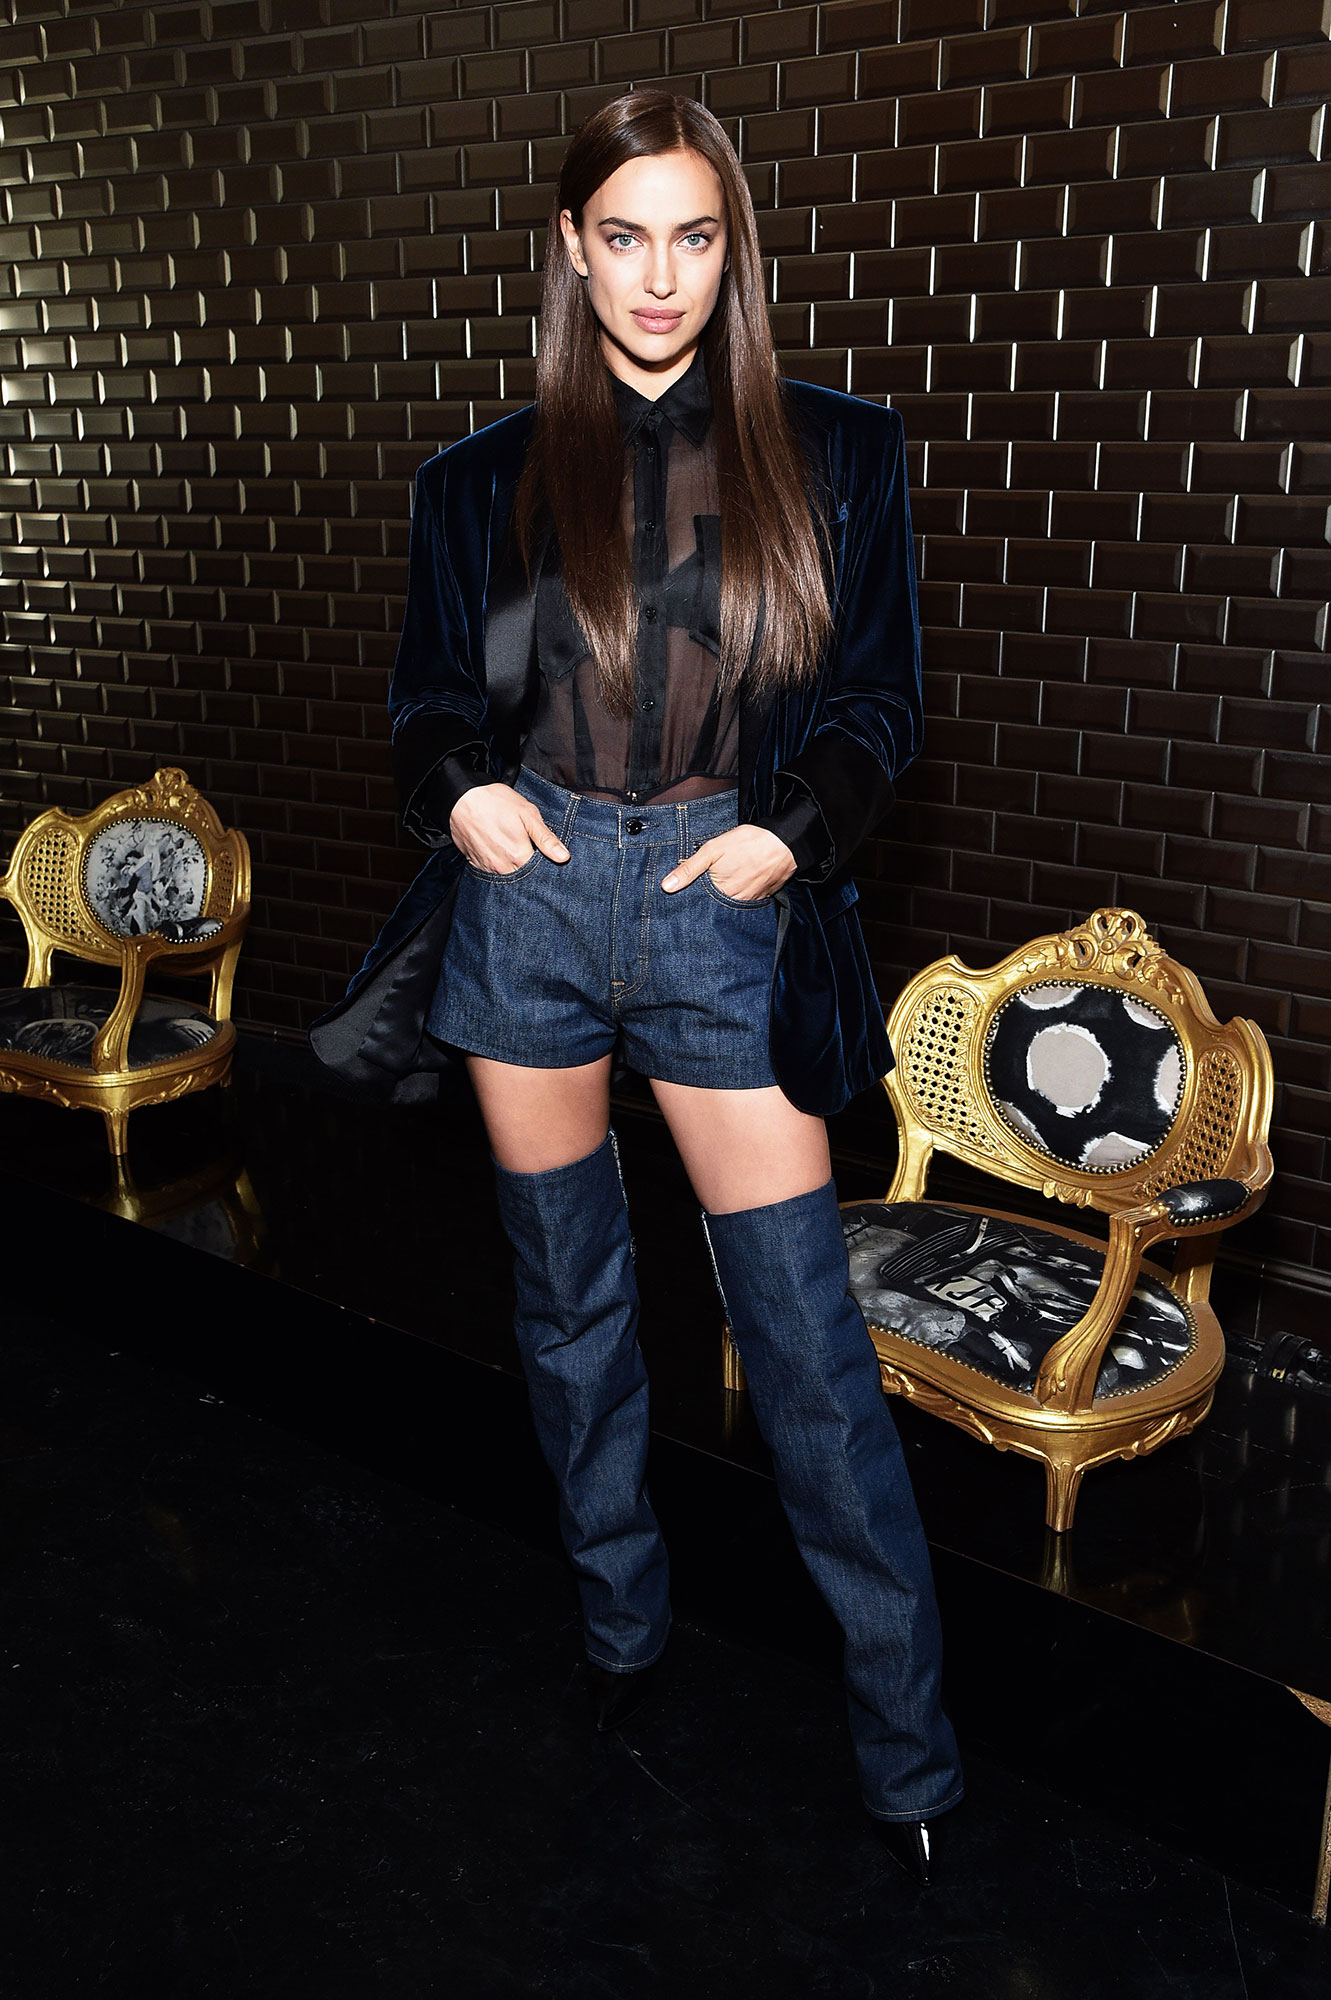 Irina Shayk - Showing Us how to wear shorts in the winter, Bradley Cooper's better half rocked denim shorts with matching thigh-high boots and a sheer shirt at the Jean Paul Gaultier show on Wednesday, January 23.